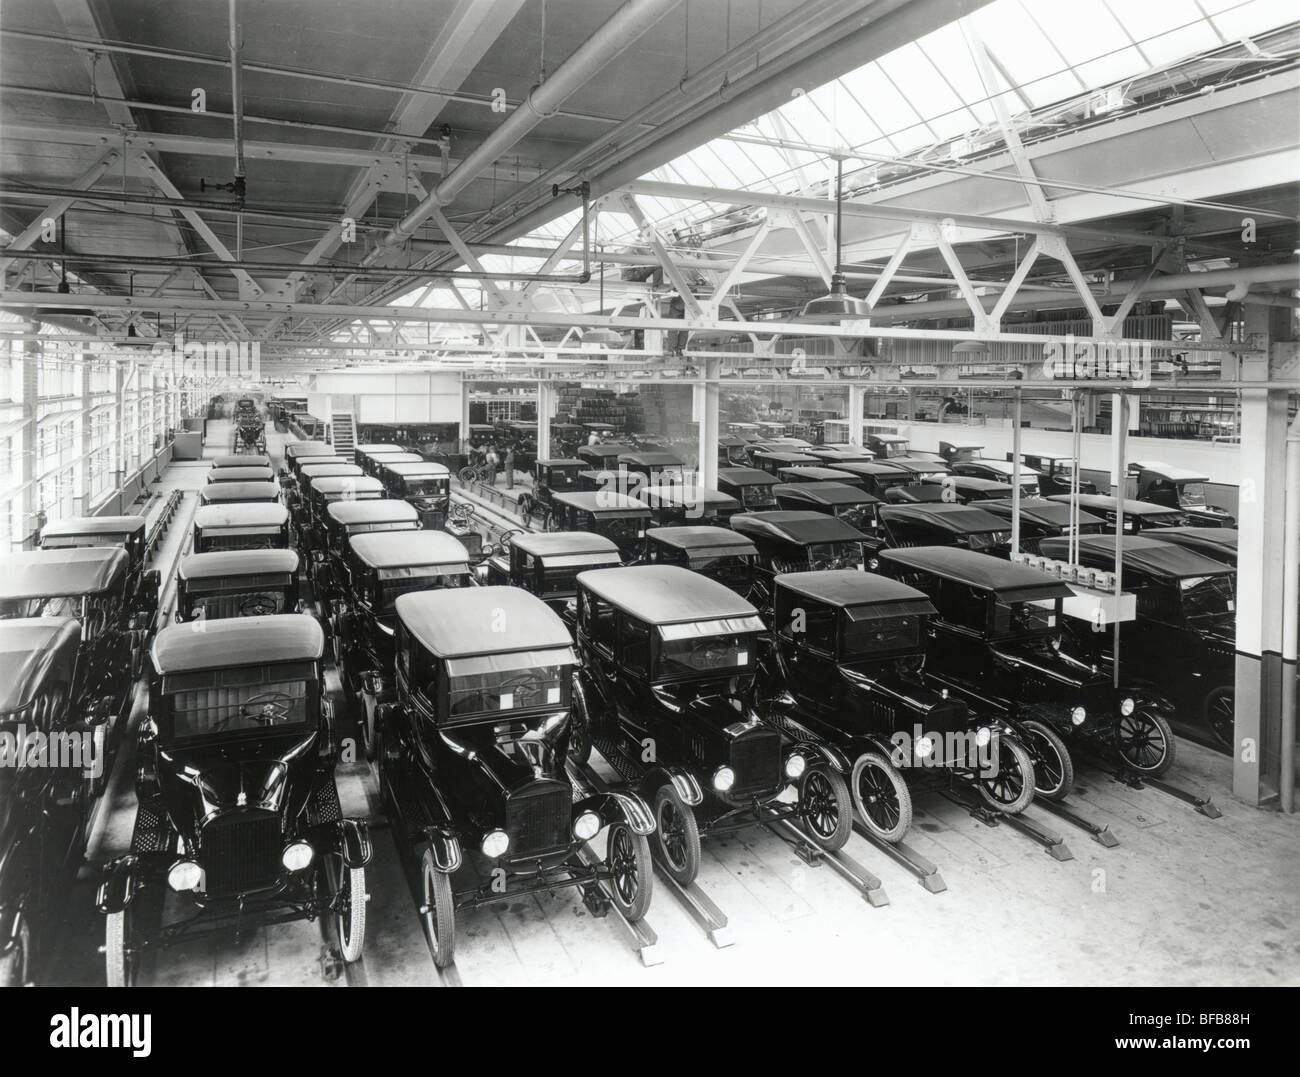 Final Assembly of Mass Produced Autos - Stock Image